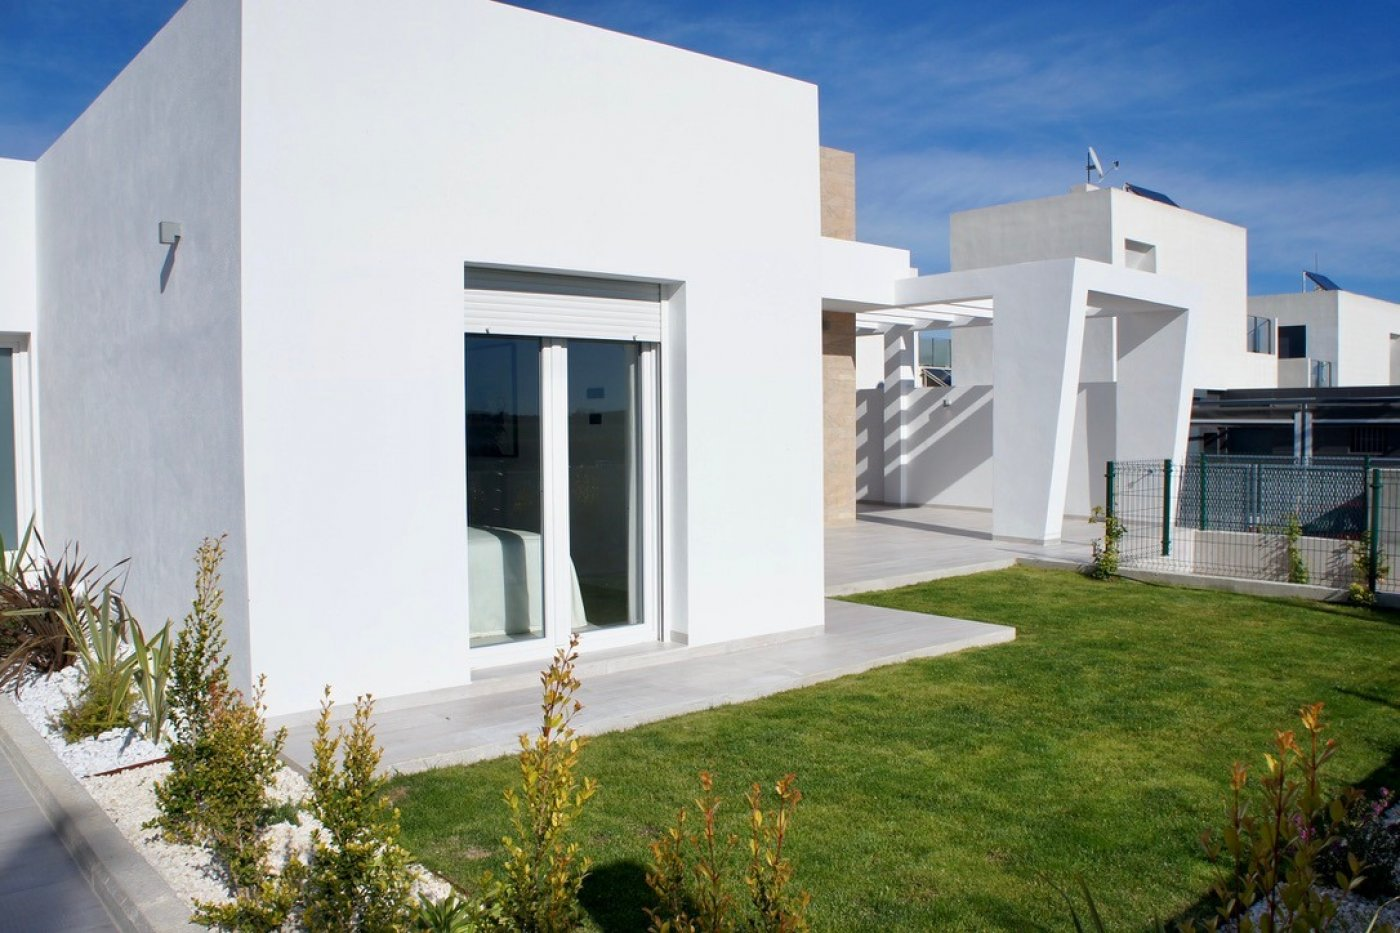 Gallery Image 2 of Luxury detached high quality villa on the amazing La Finca Golf Resort